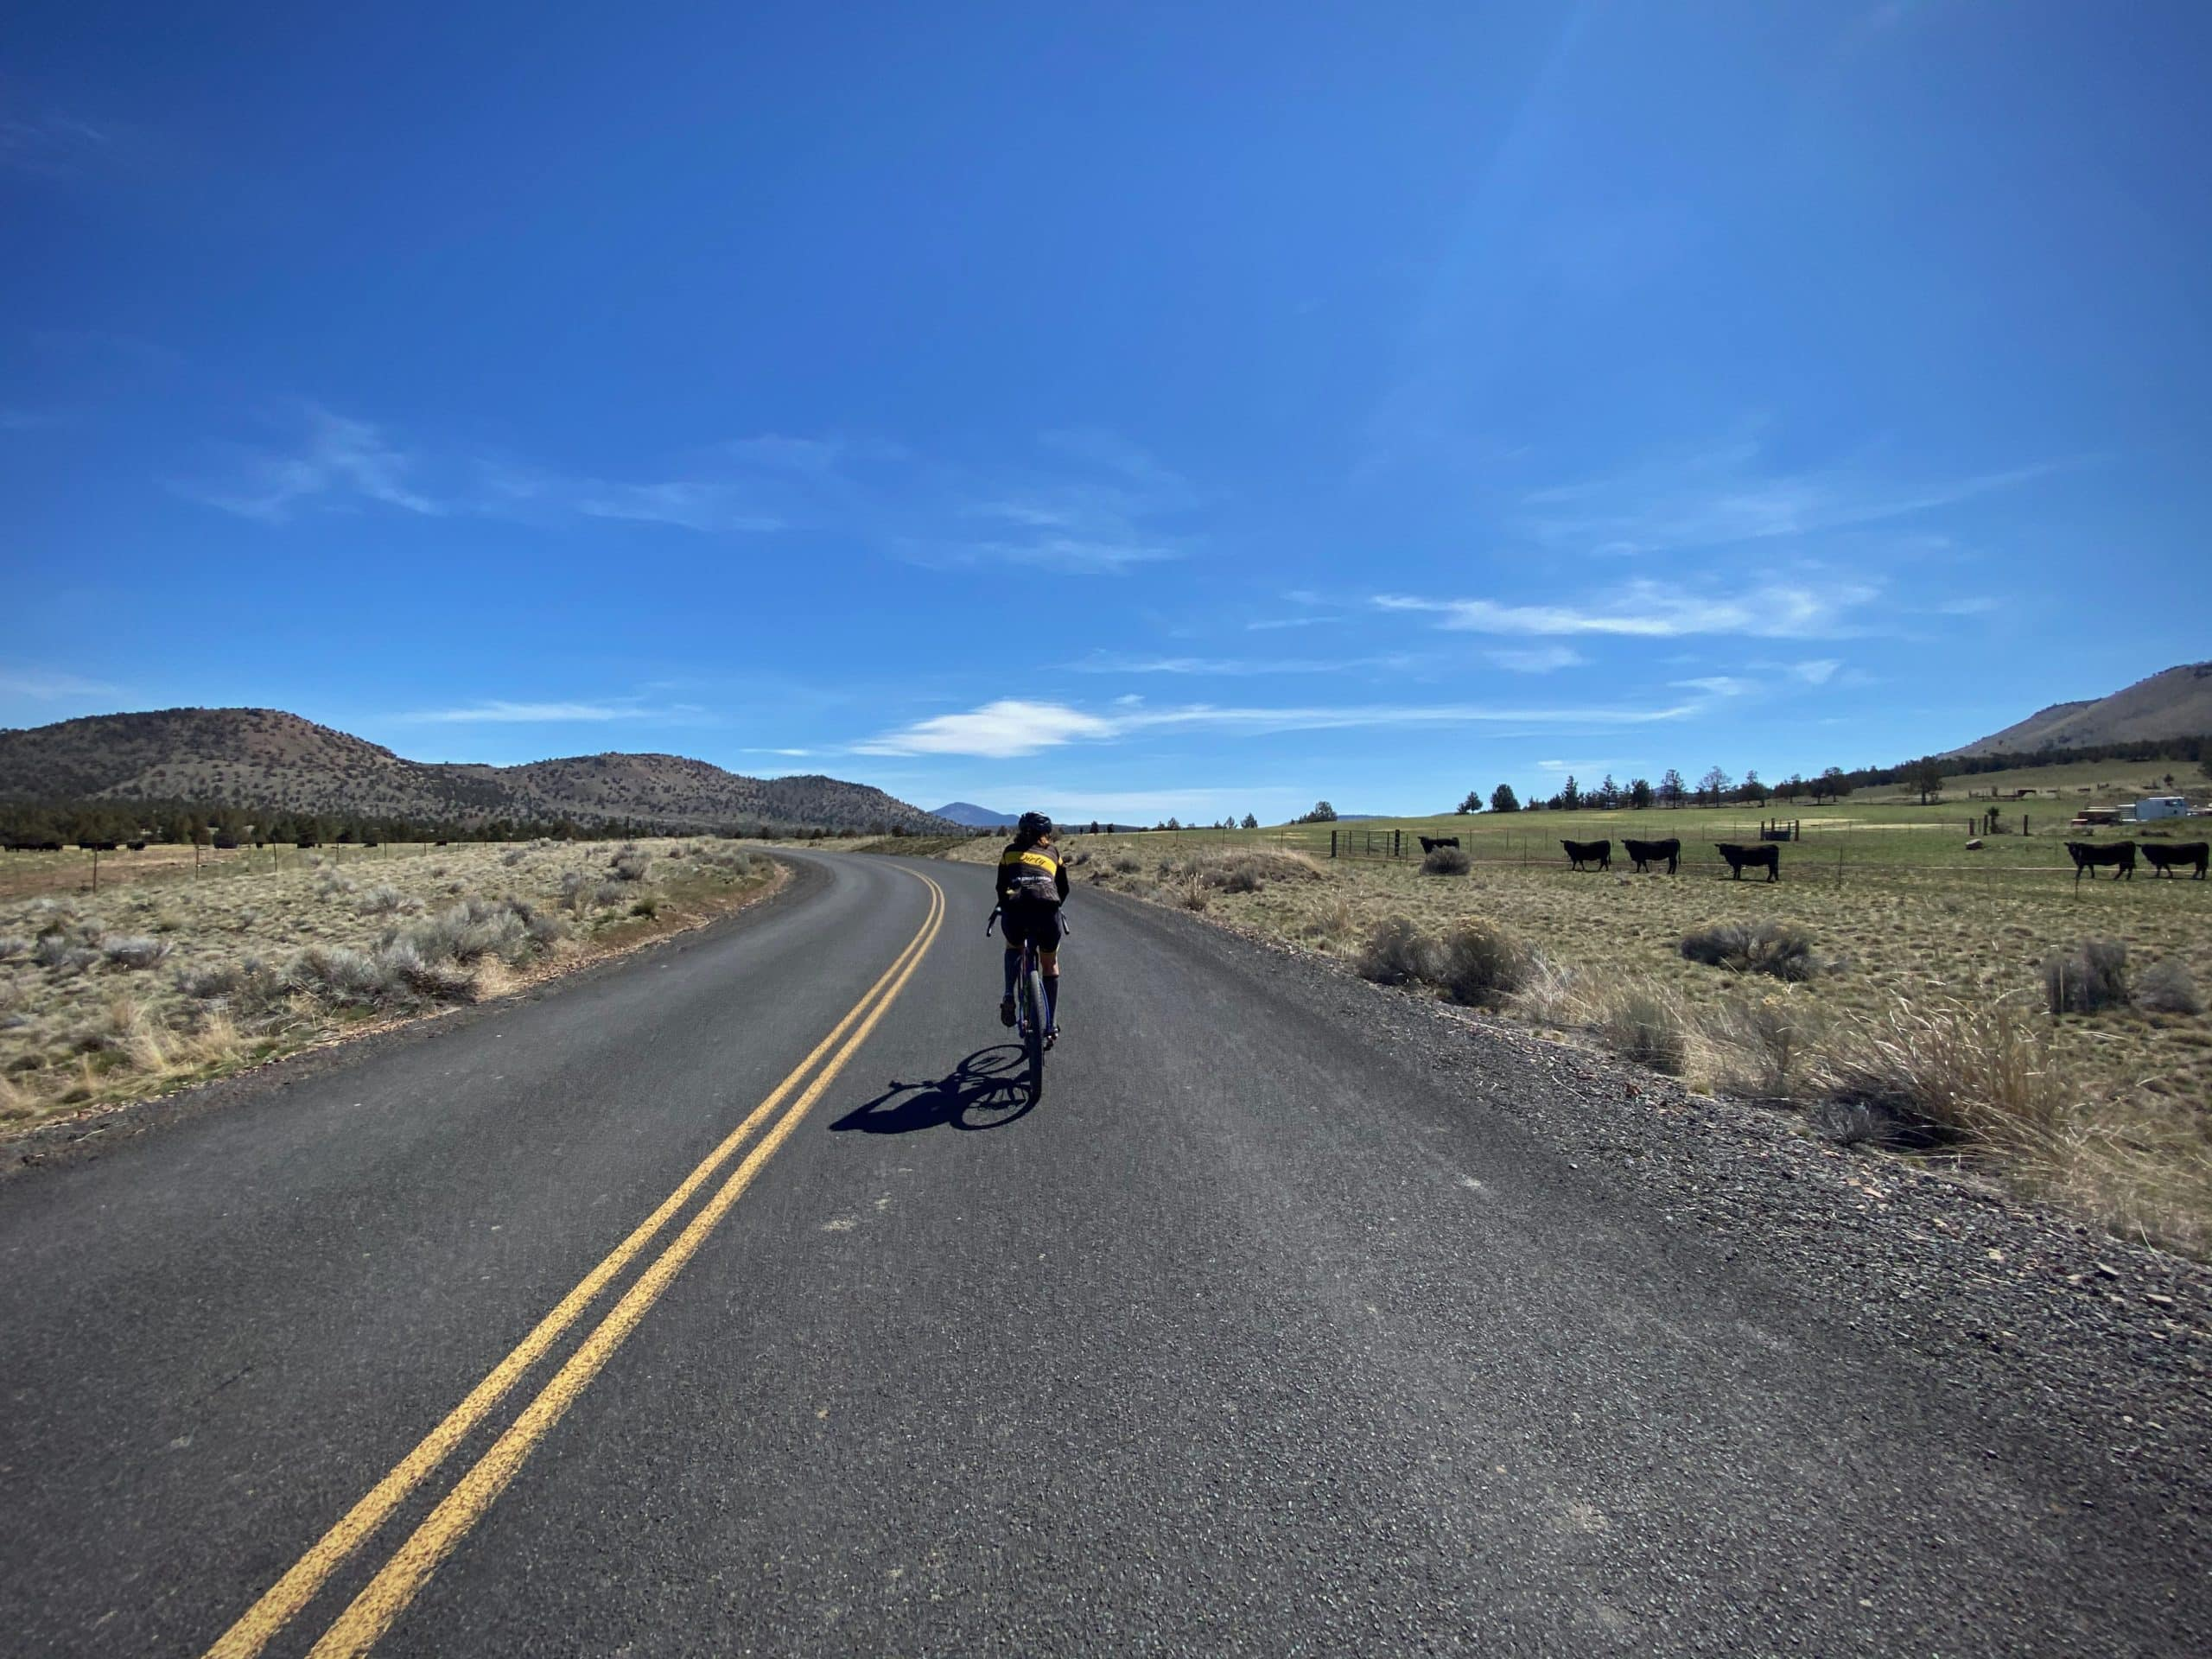 Woman cyclist on paved road with cows alongside. Near Madras and Terrebonne, Oregon.